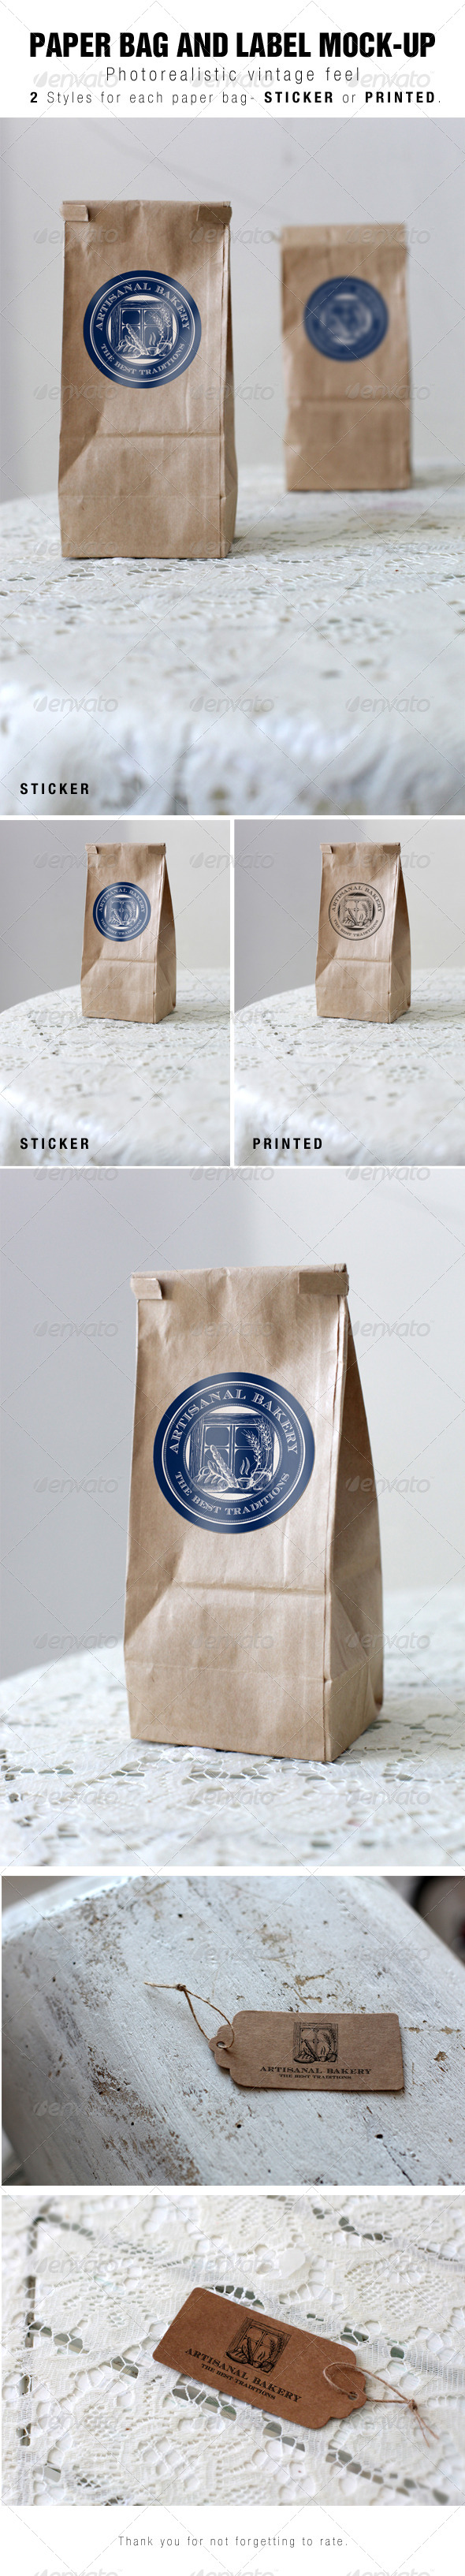 GraphicRiver Paper Bag and Label Mock-up 6830128